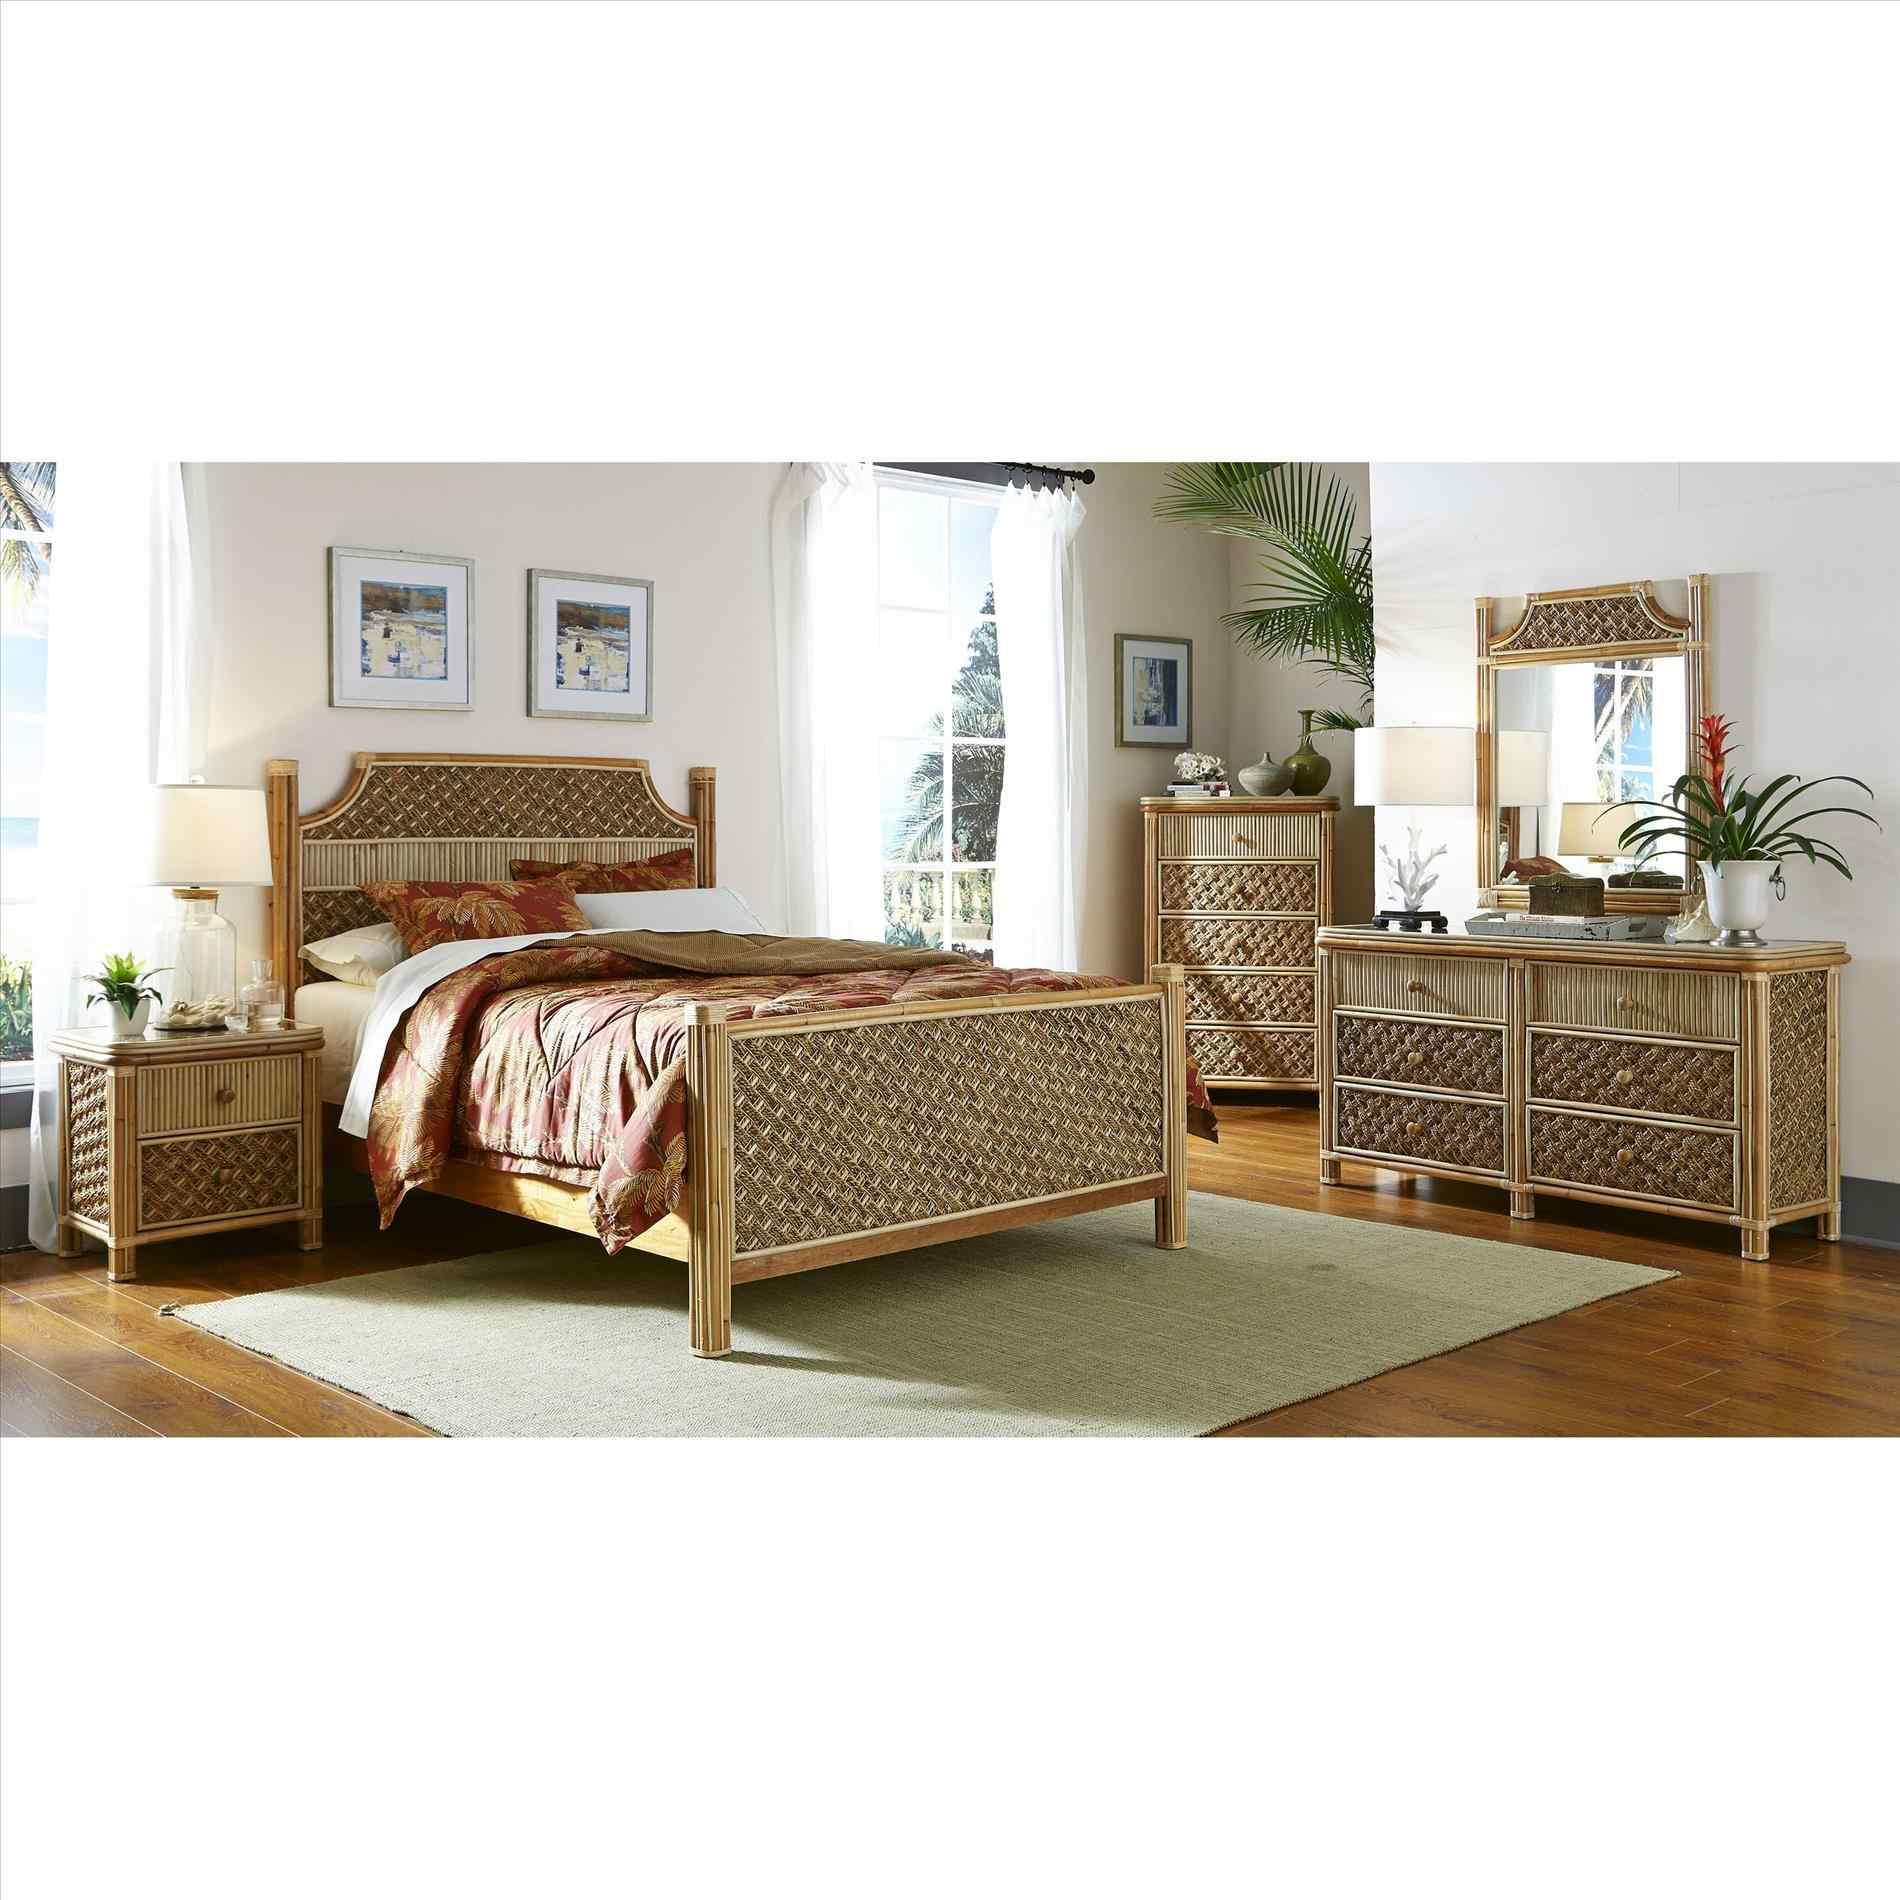 black bamboo bedroom furniture photo - 9